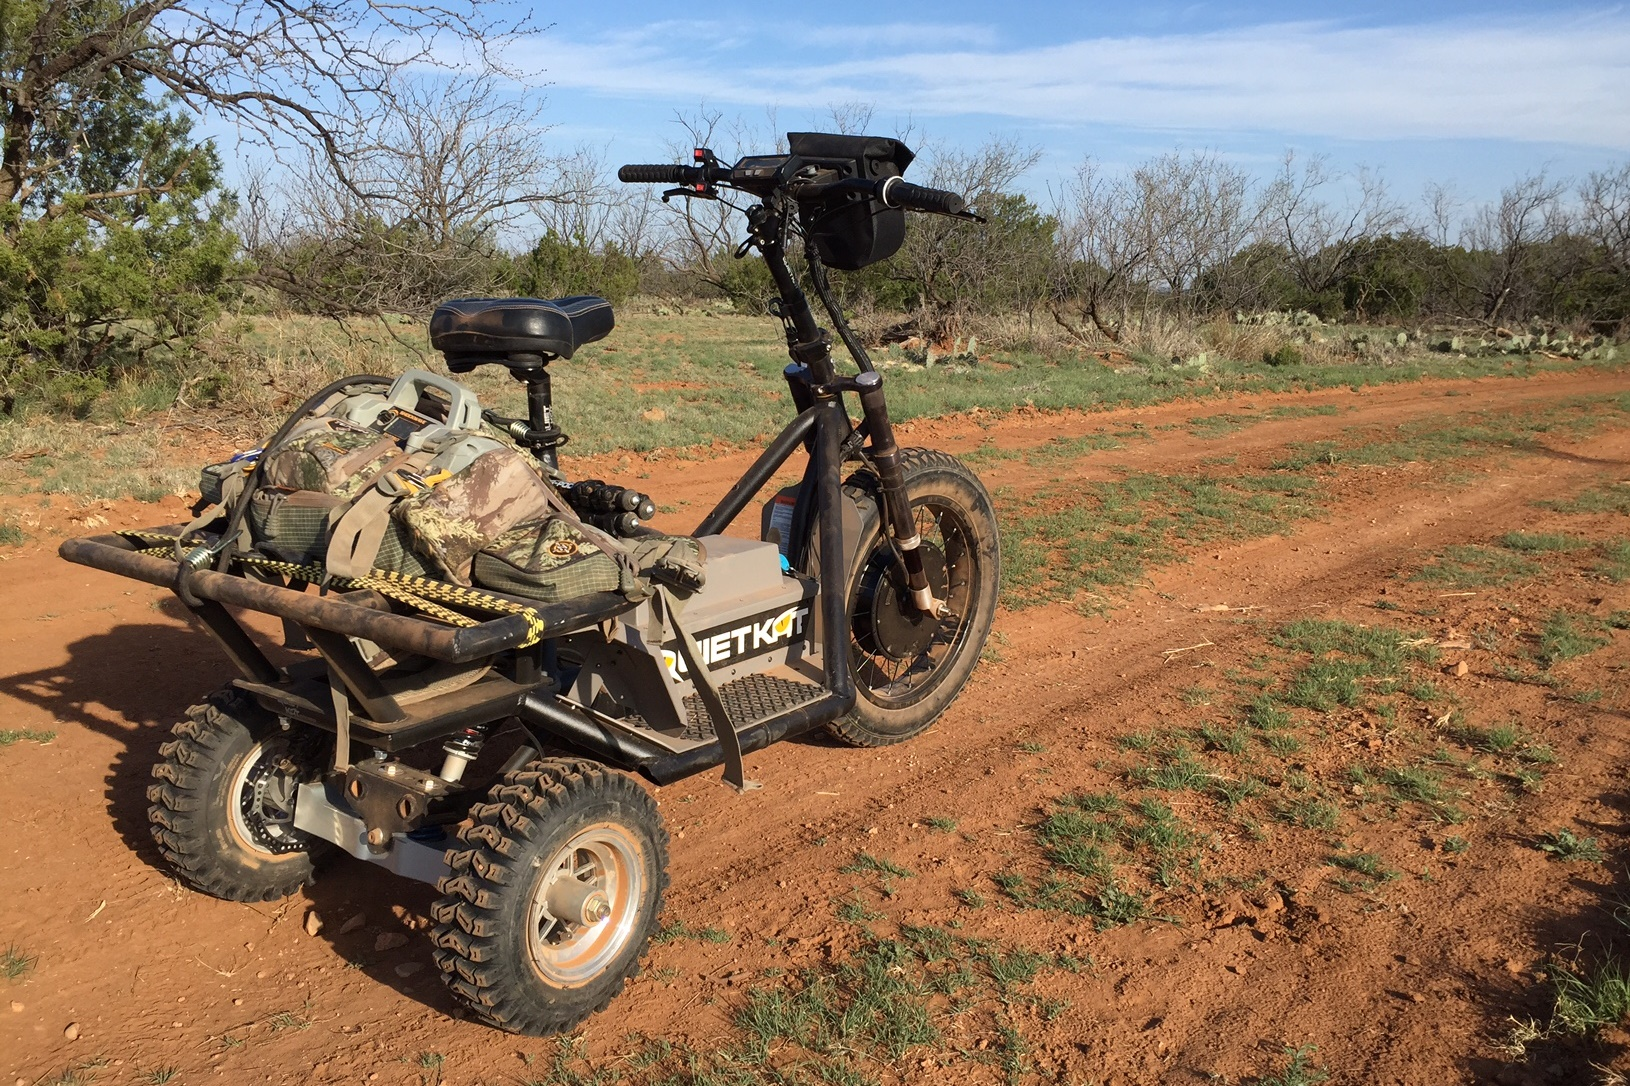 QuietKat HUNTER – 48V-Portable Electric All-Terrain Vehicle